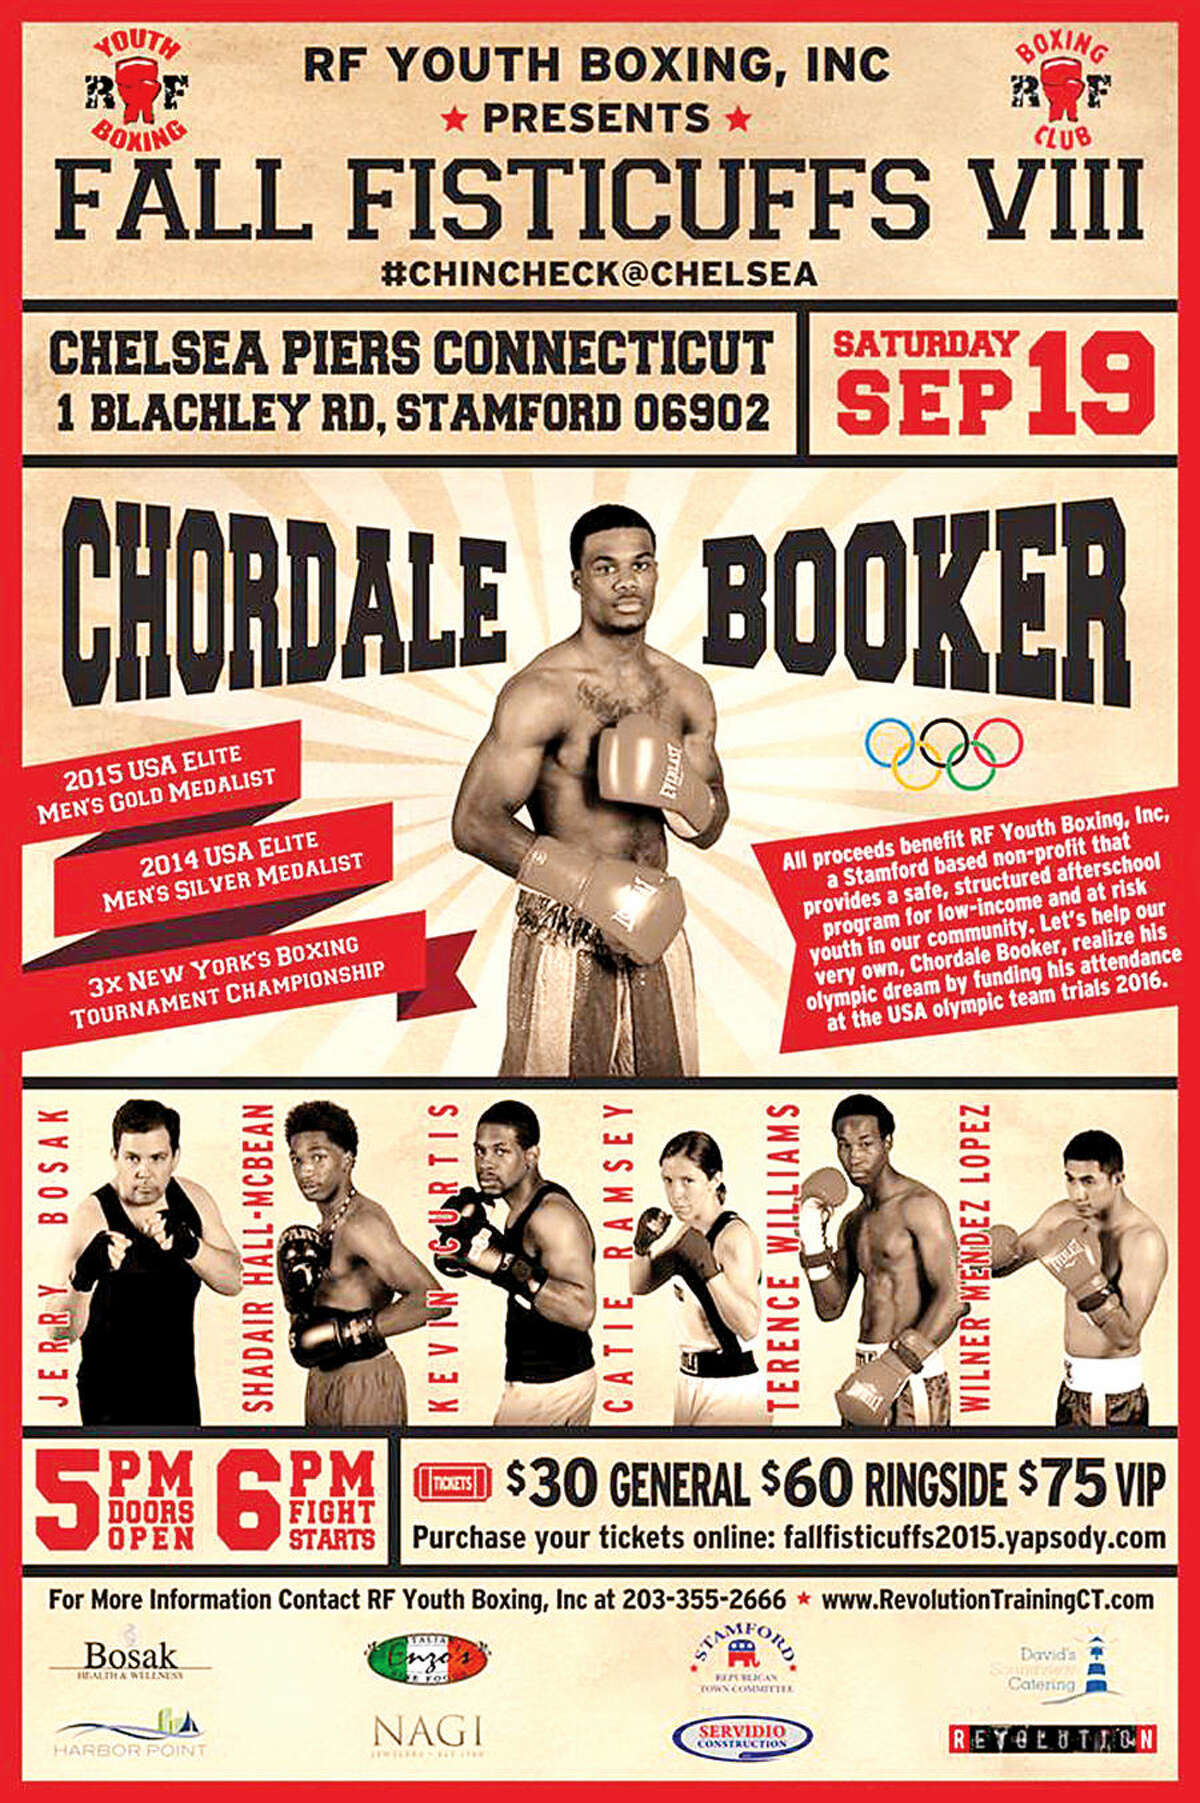 The Fall Fisticuffs Vlll will feature Chordale Booker and Jerry Bosak this Saturday to help raise money to benefit the Revolution Fitness Youth Boxing program and to help Booker, a Stamford High alumni, attend 2016 Olympic trials.